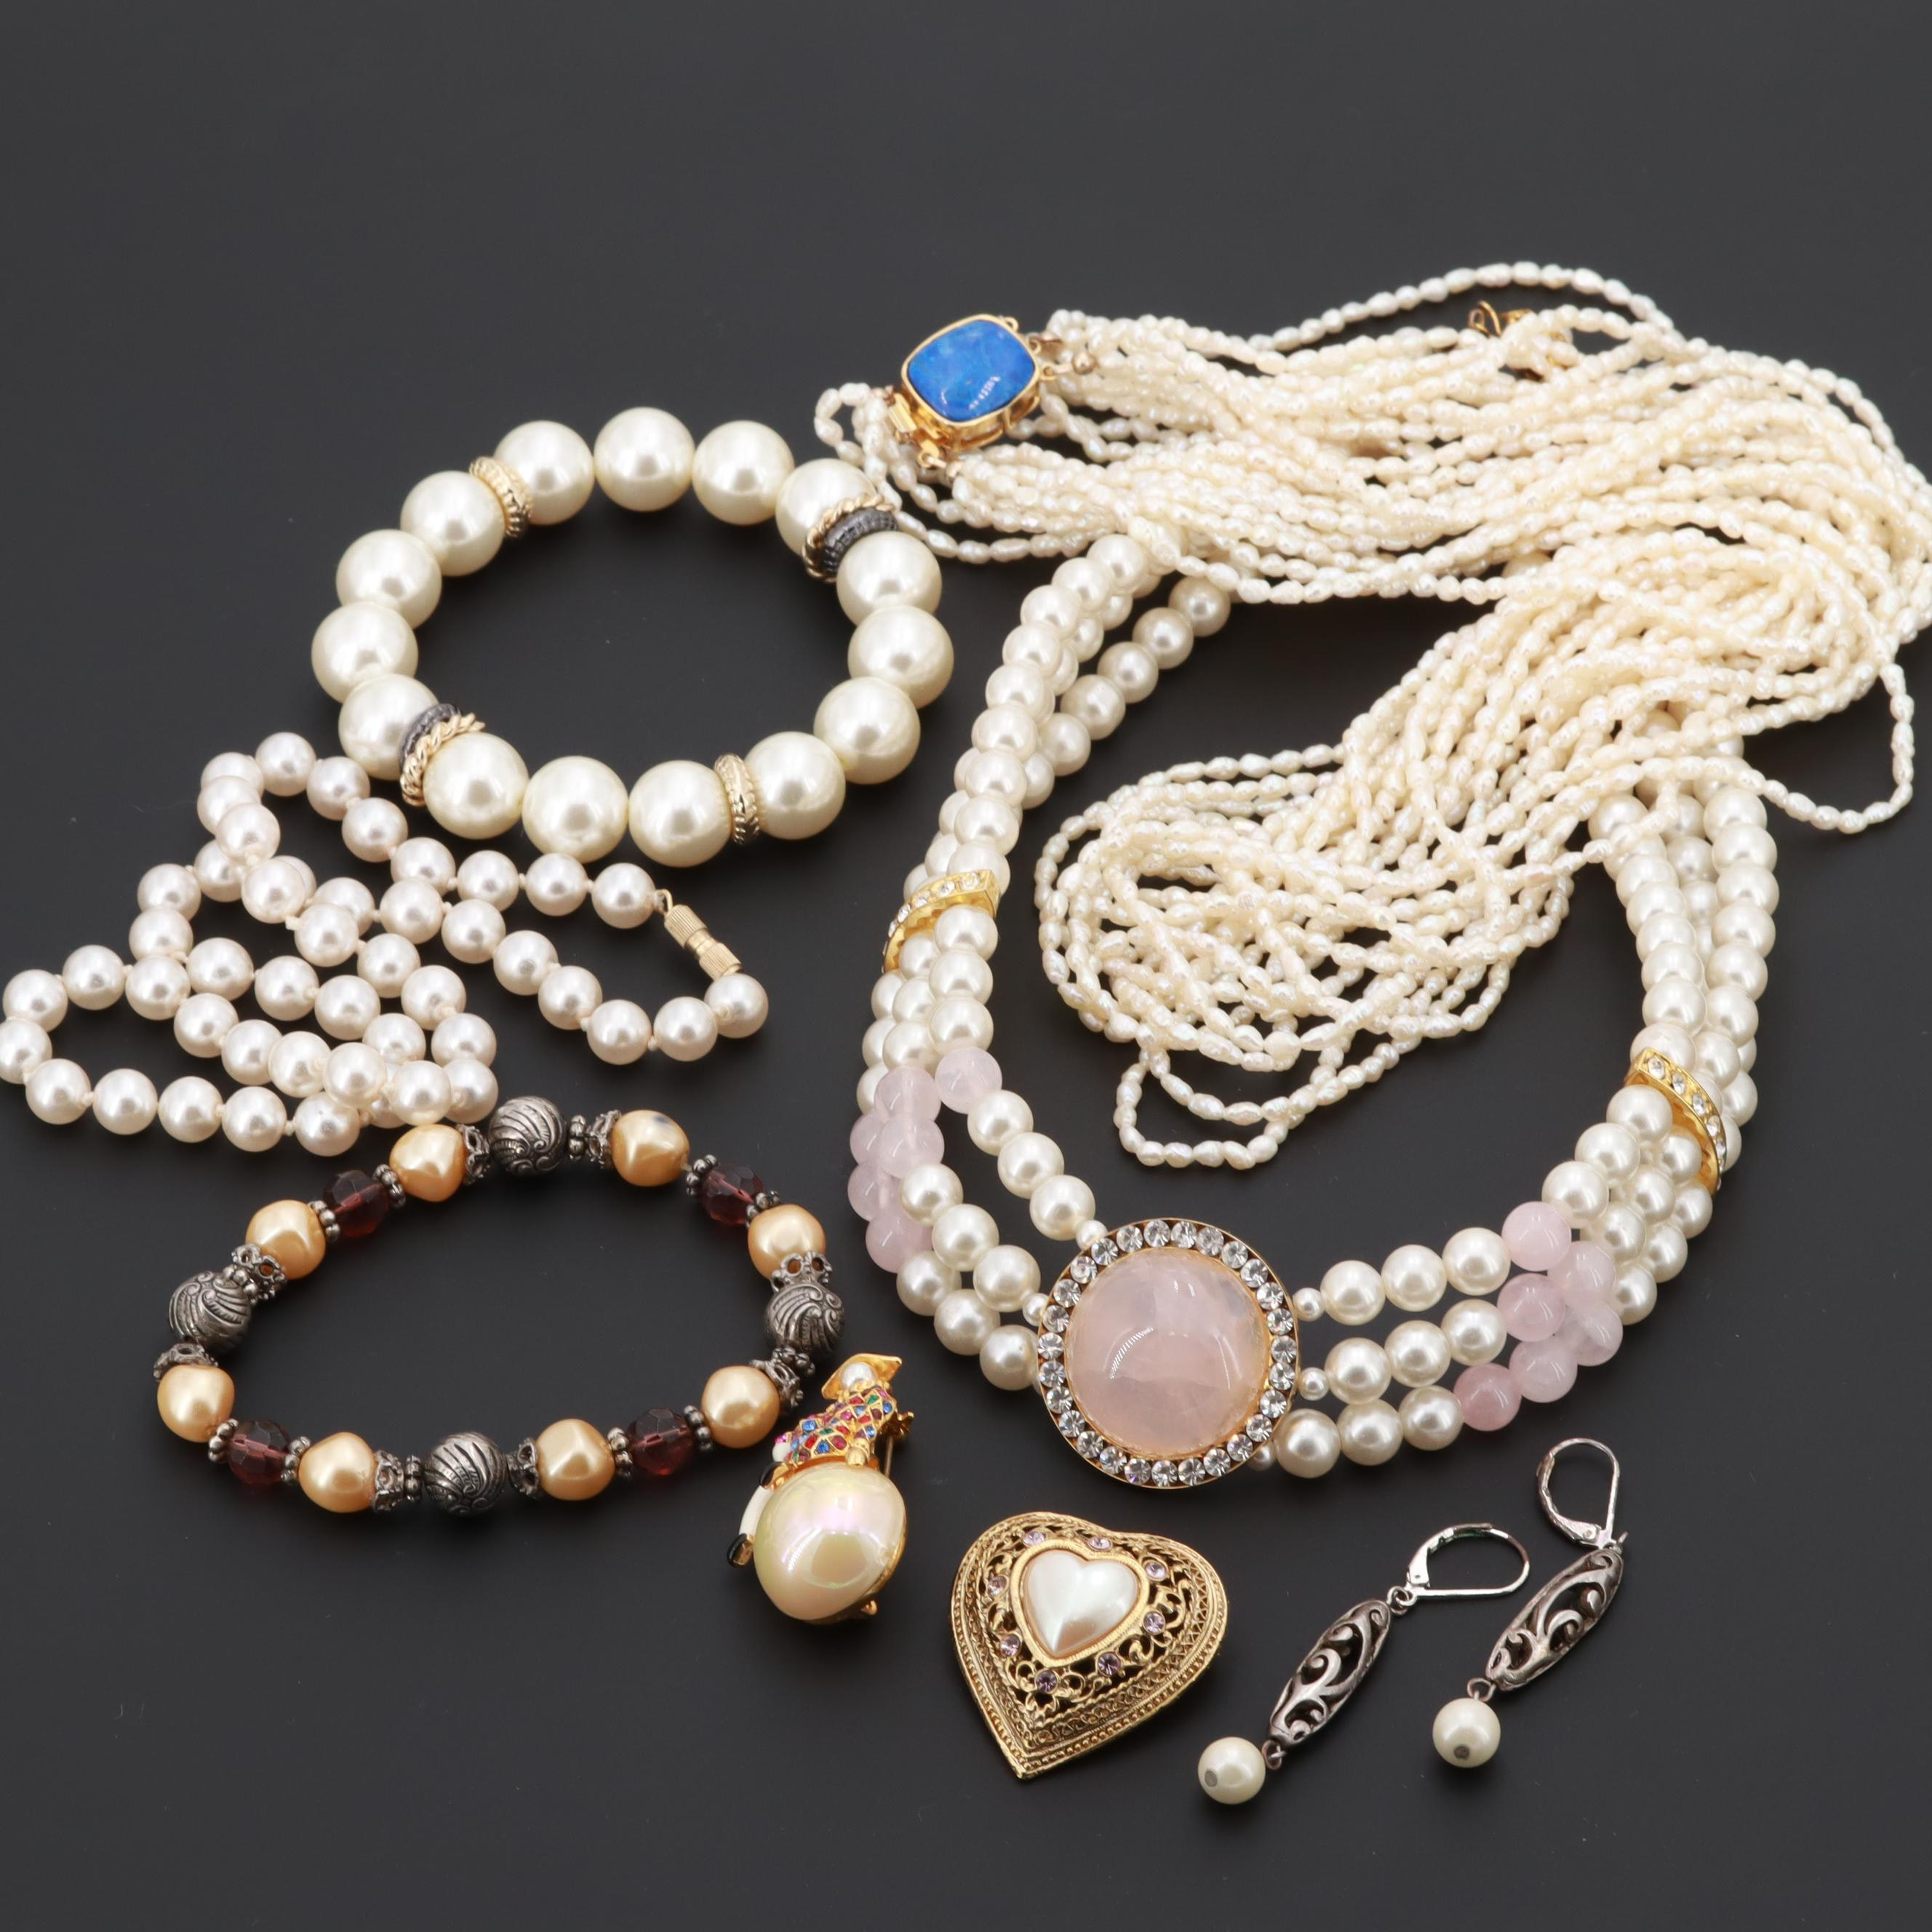 Rose Quartz, Cultured and Imitation Pearl Assorted Jewelry